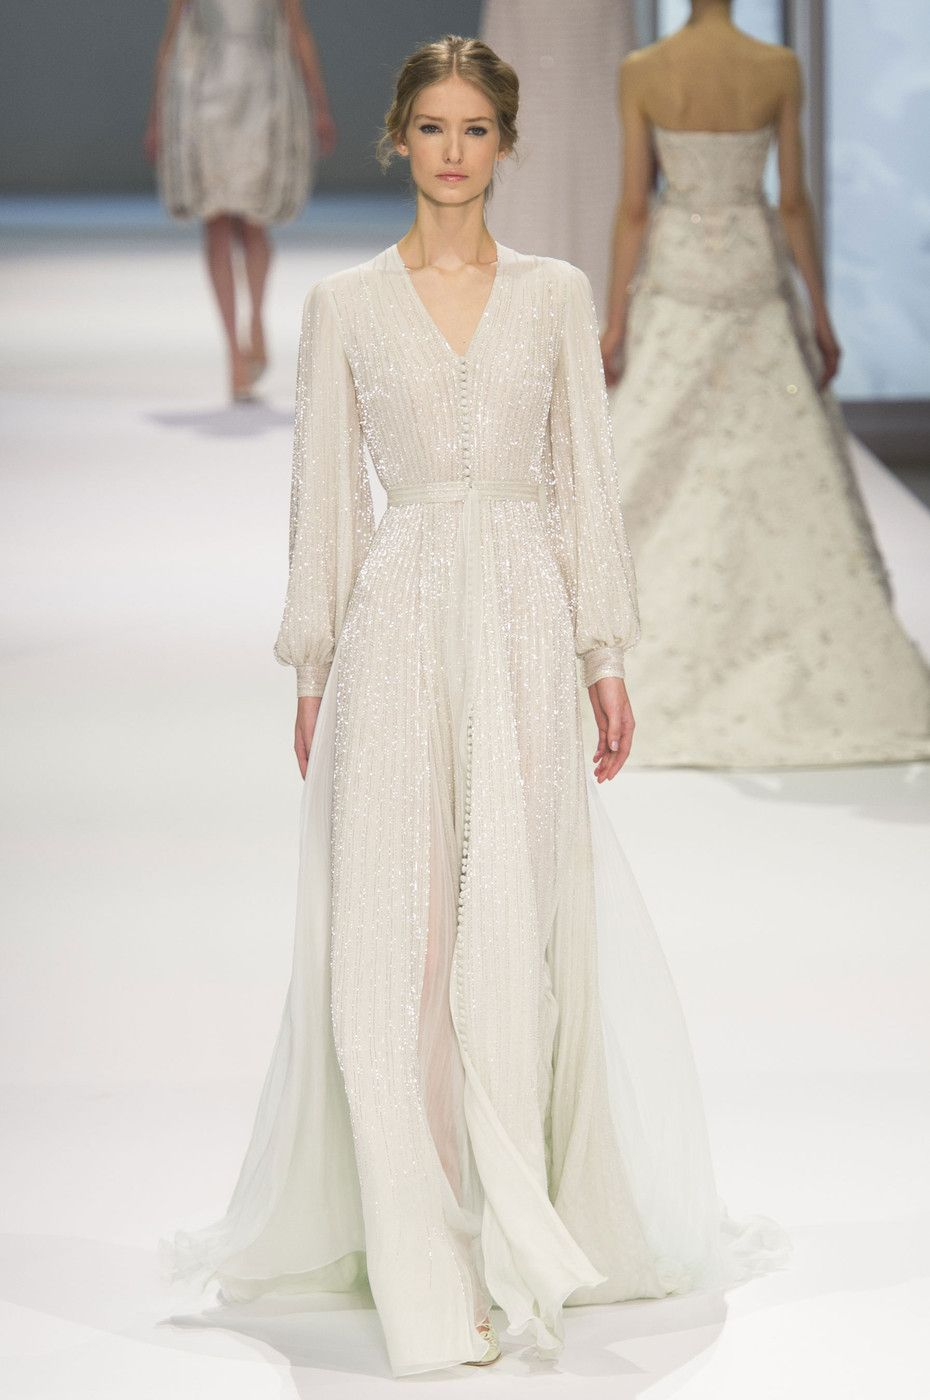 Ralph u russo at couture spring long sleeve maxi maxi